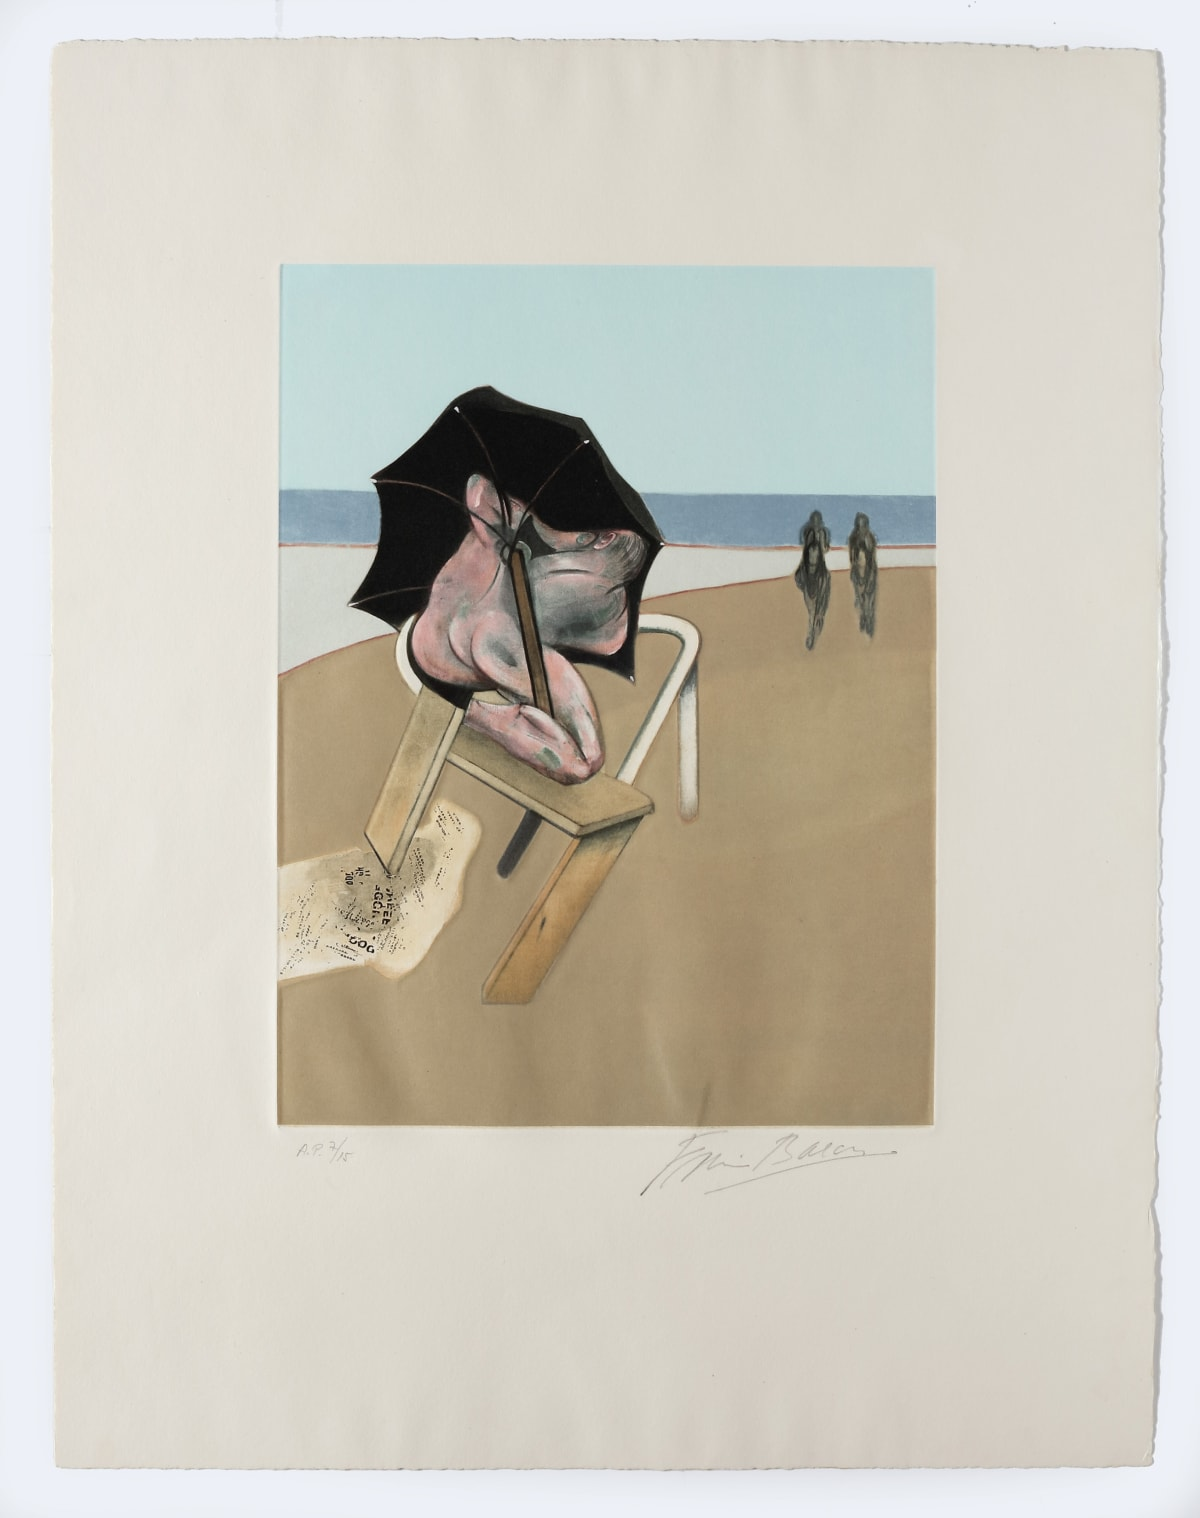 Francis Bacon Triptych 1974-1977, 1981 (left panel) Etching and aquatint on Guarro paper edition of 99 65 x 50 cm